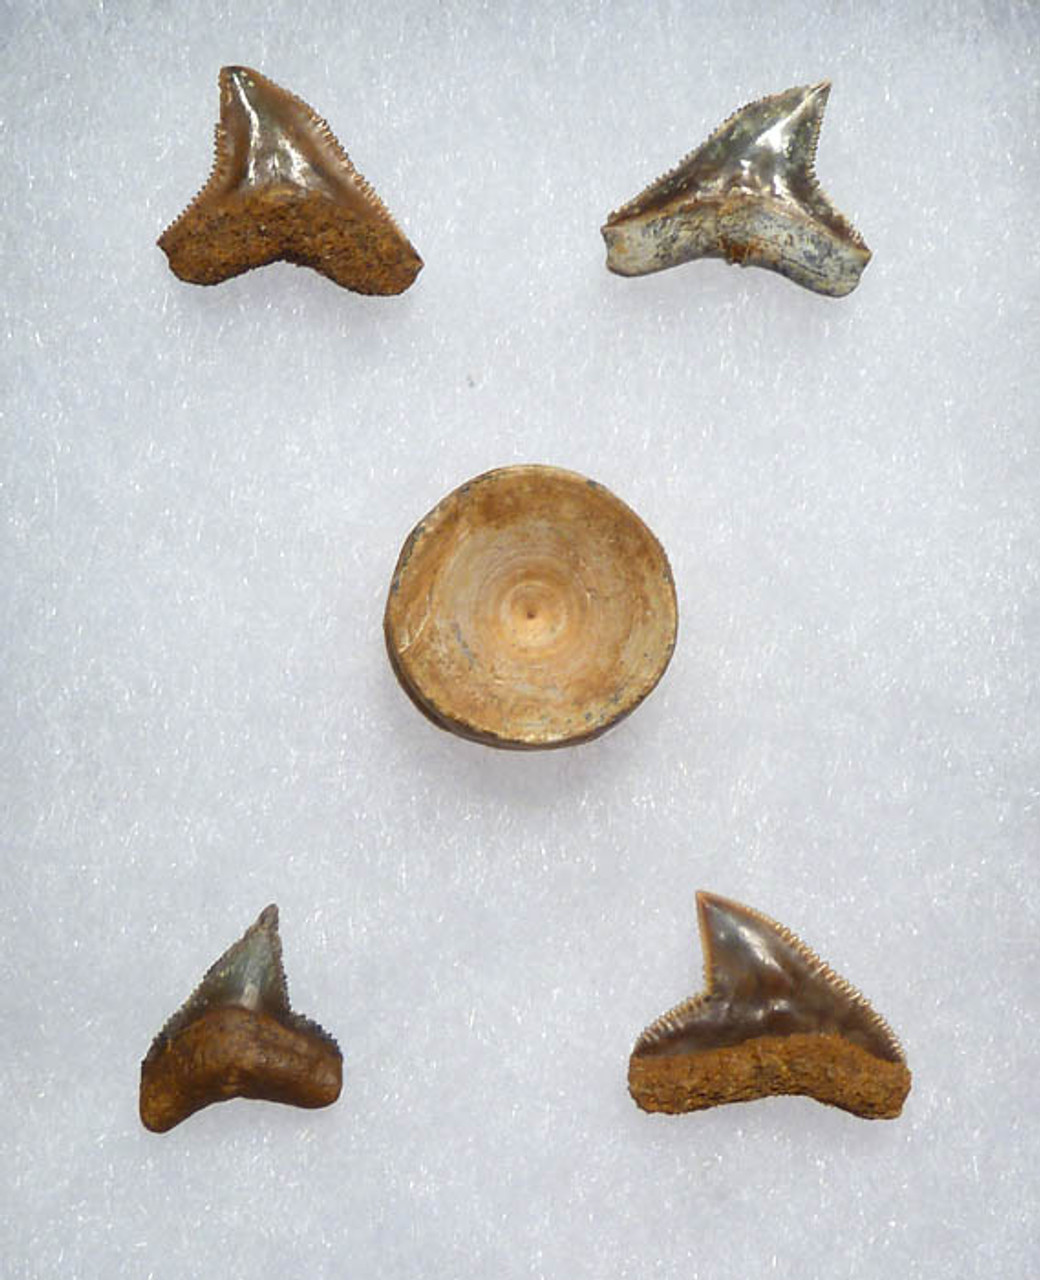 EXTREMELY RARE BULL SHARK TEETH AND A VERTEBRA FROM THE EOCENE PERIOD OF NIGER *SHX027